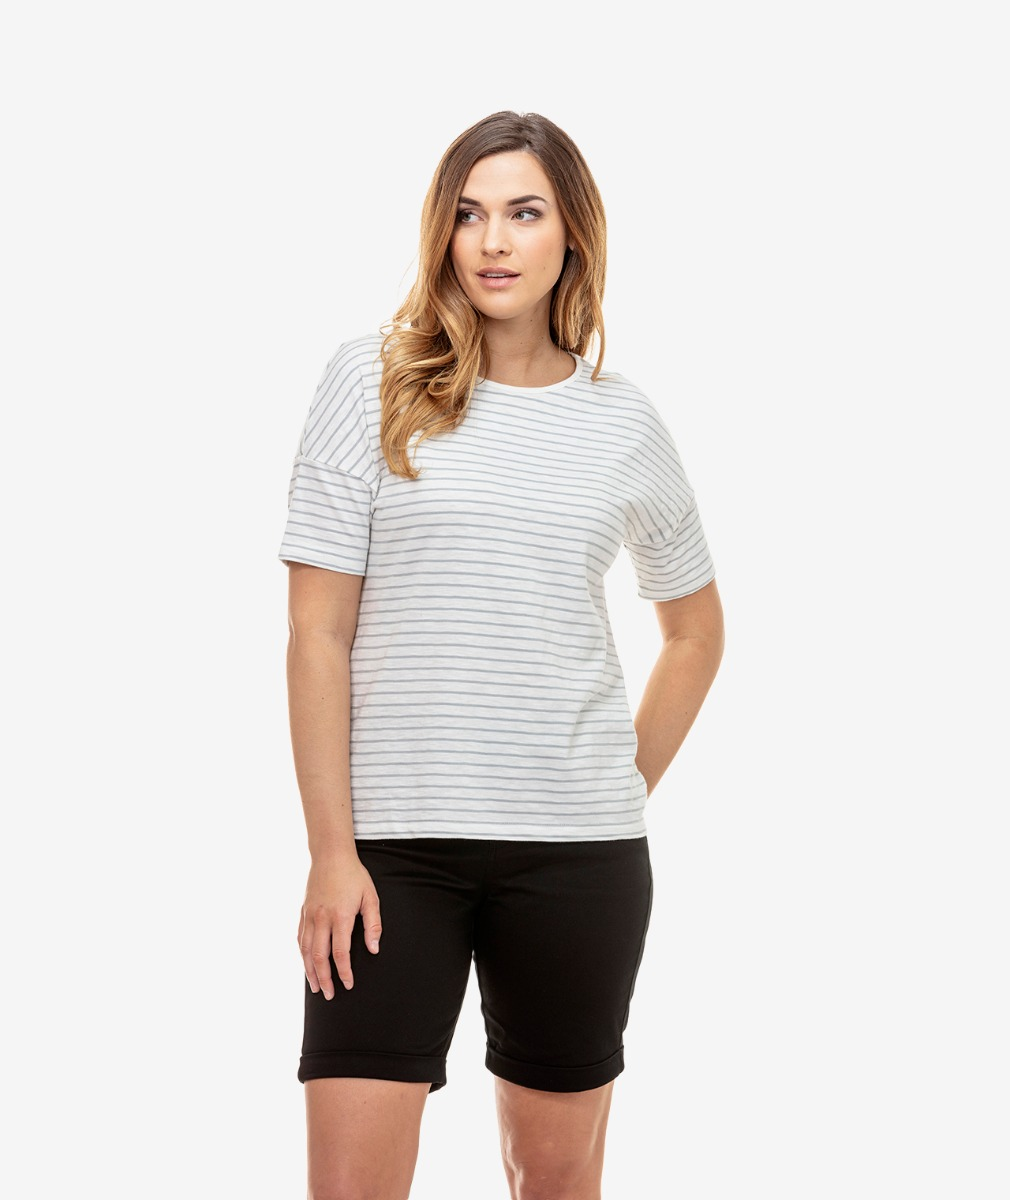 Swanndri Women's Marton Short Sleeve Cotton Top